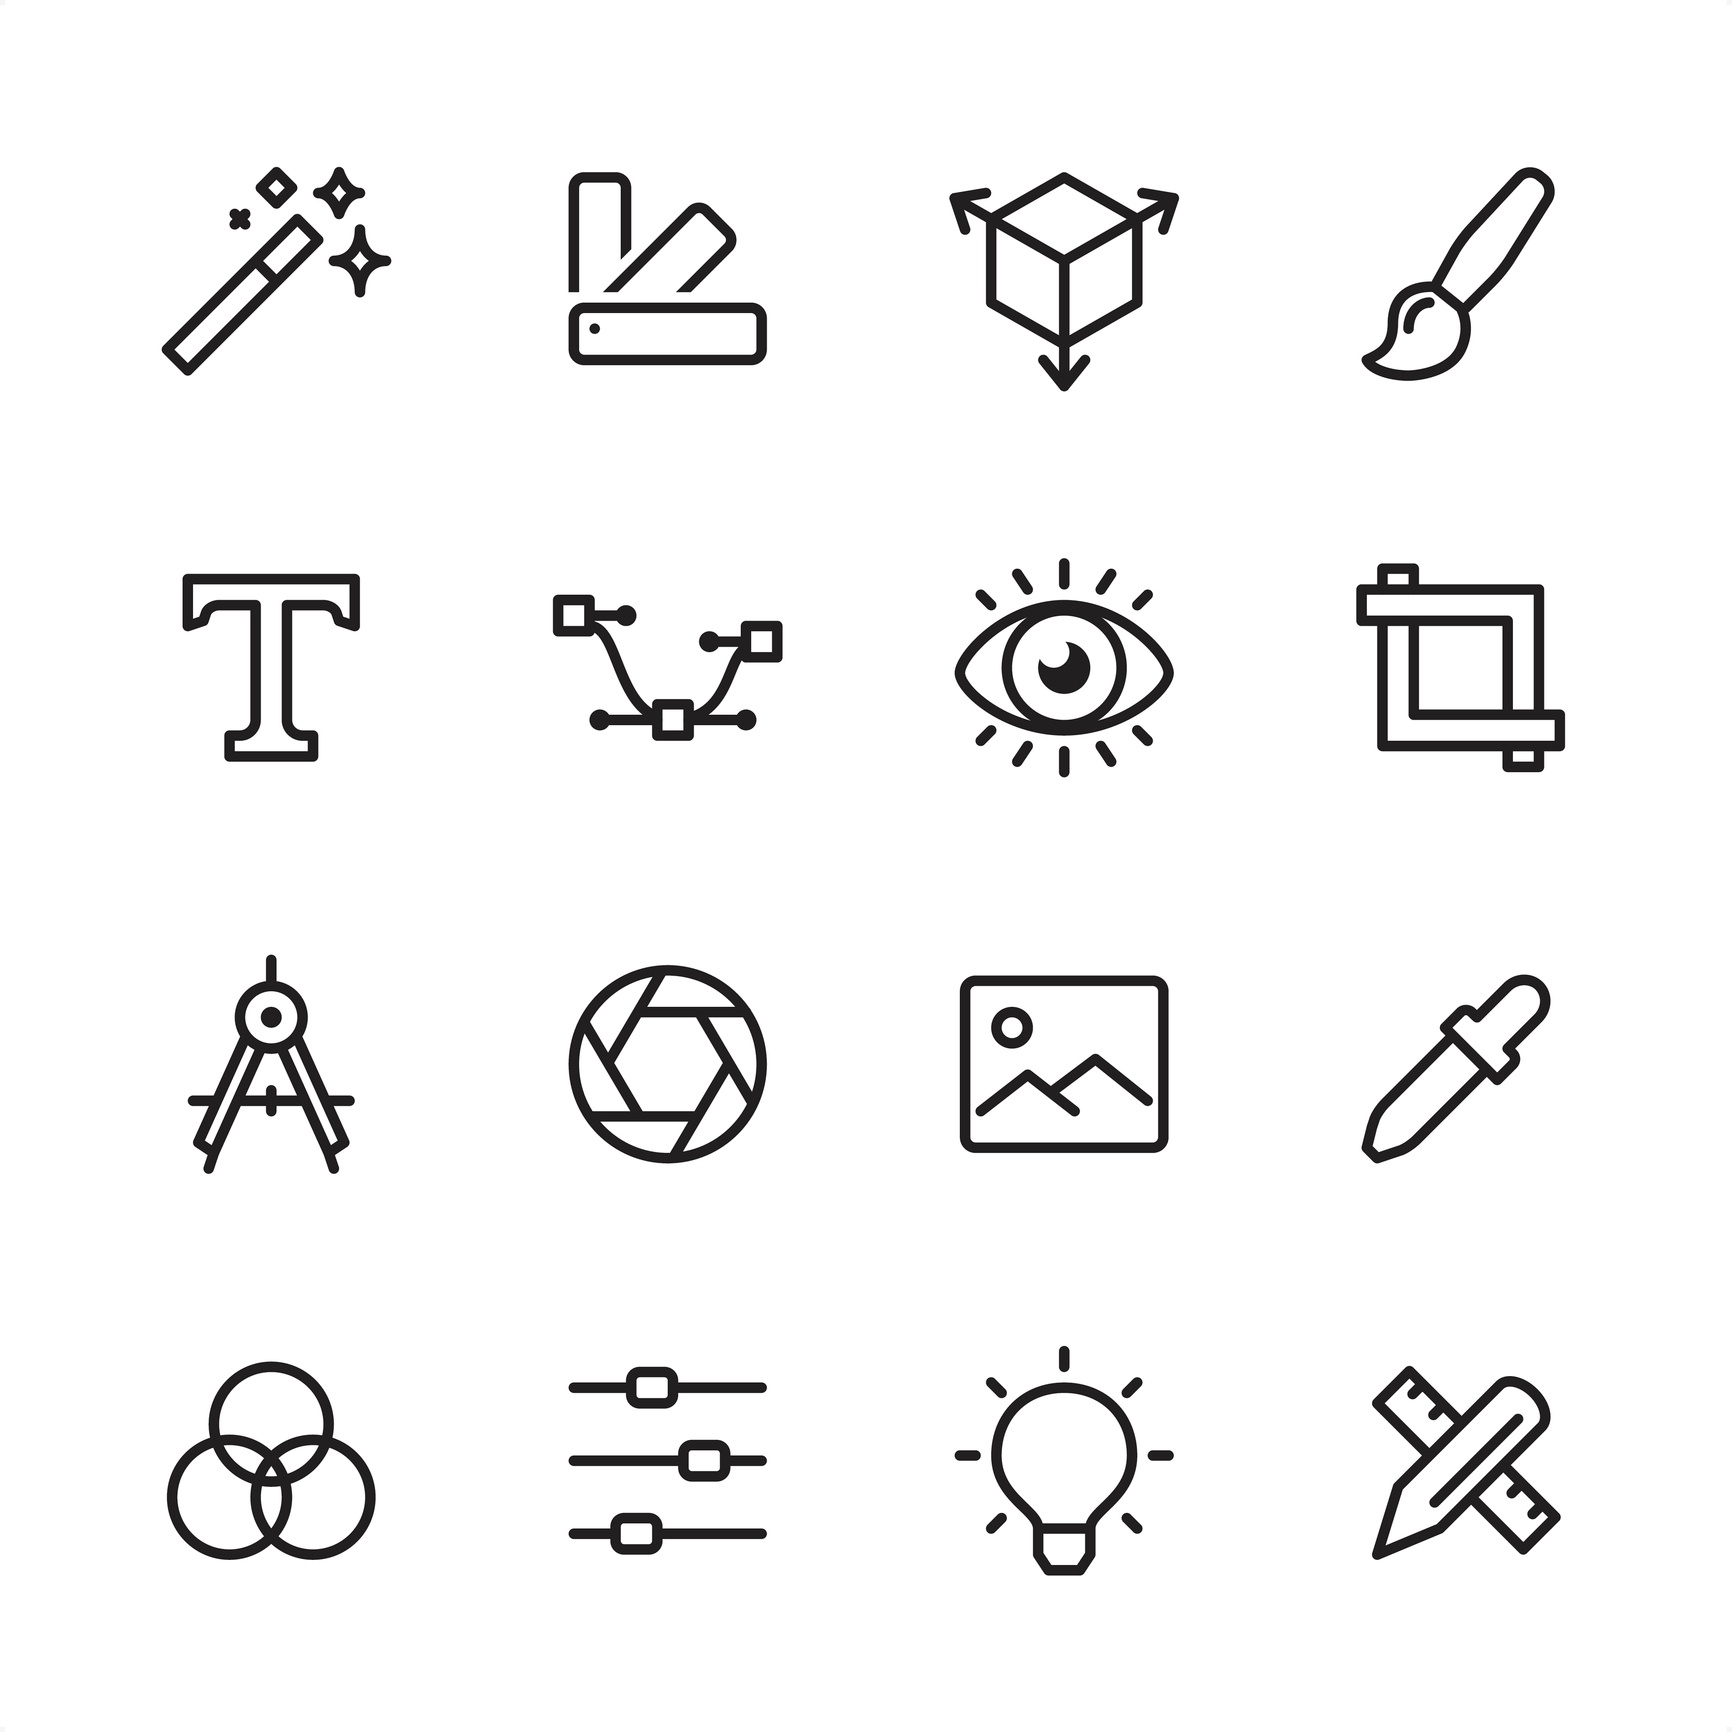 technical-icons-design-illustration.jpg